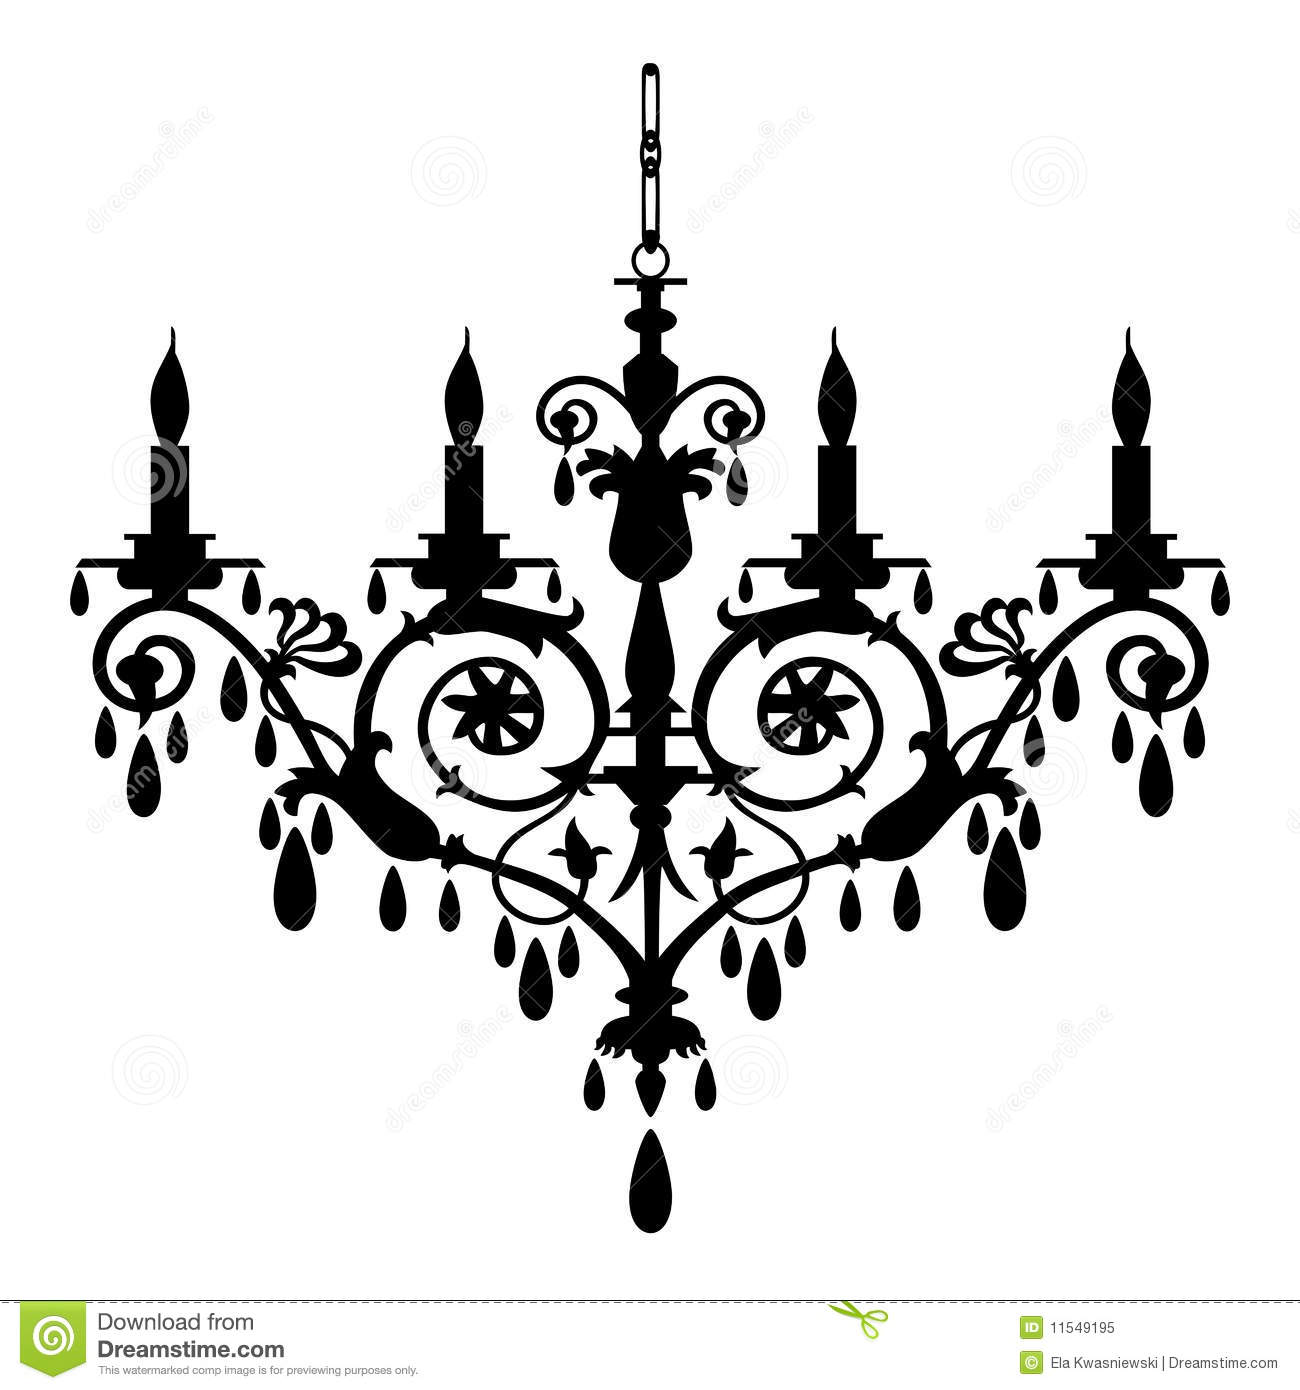 Retro Chandelier Silhouette Royalty Free Stock Photo   Image  11549195